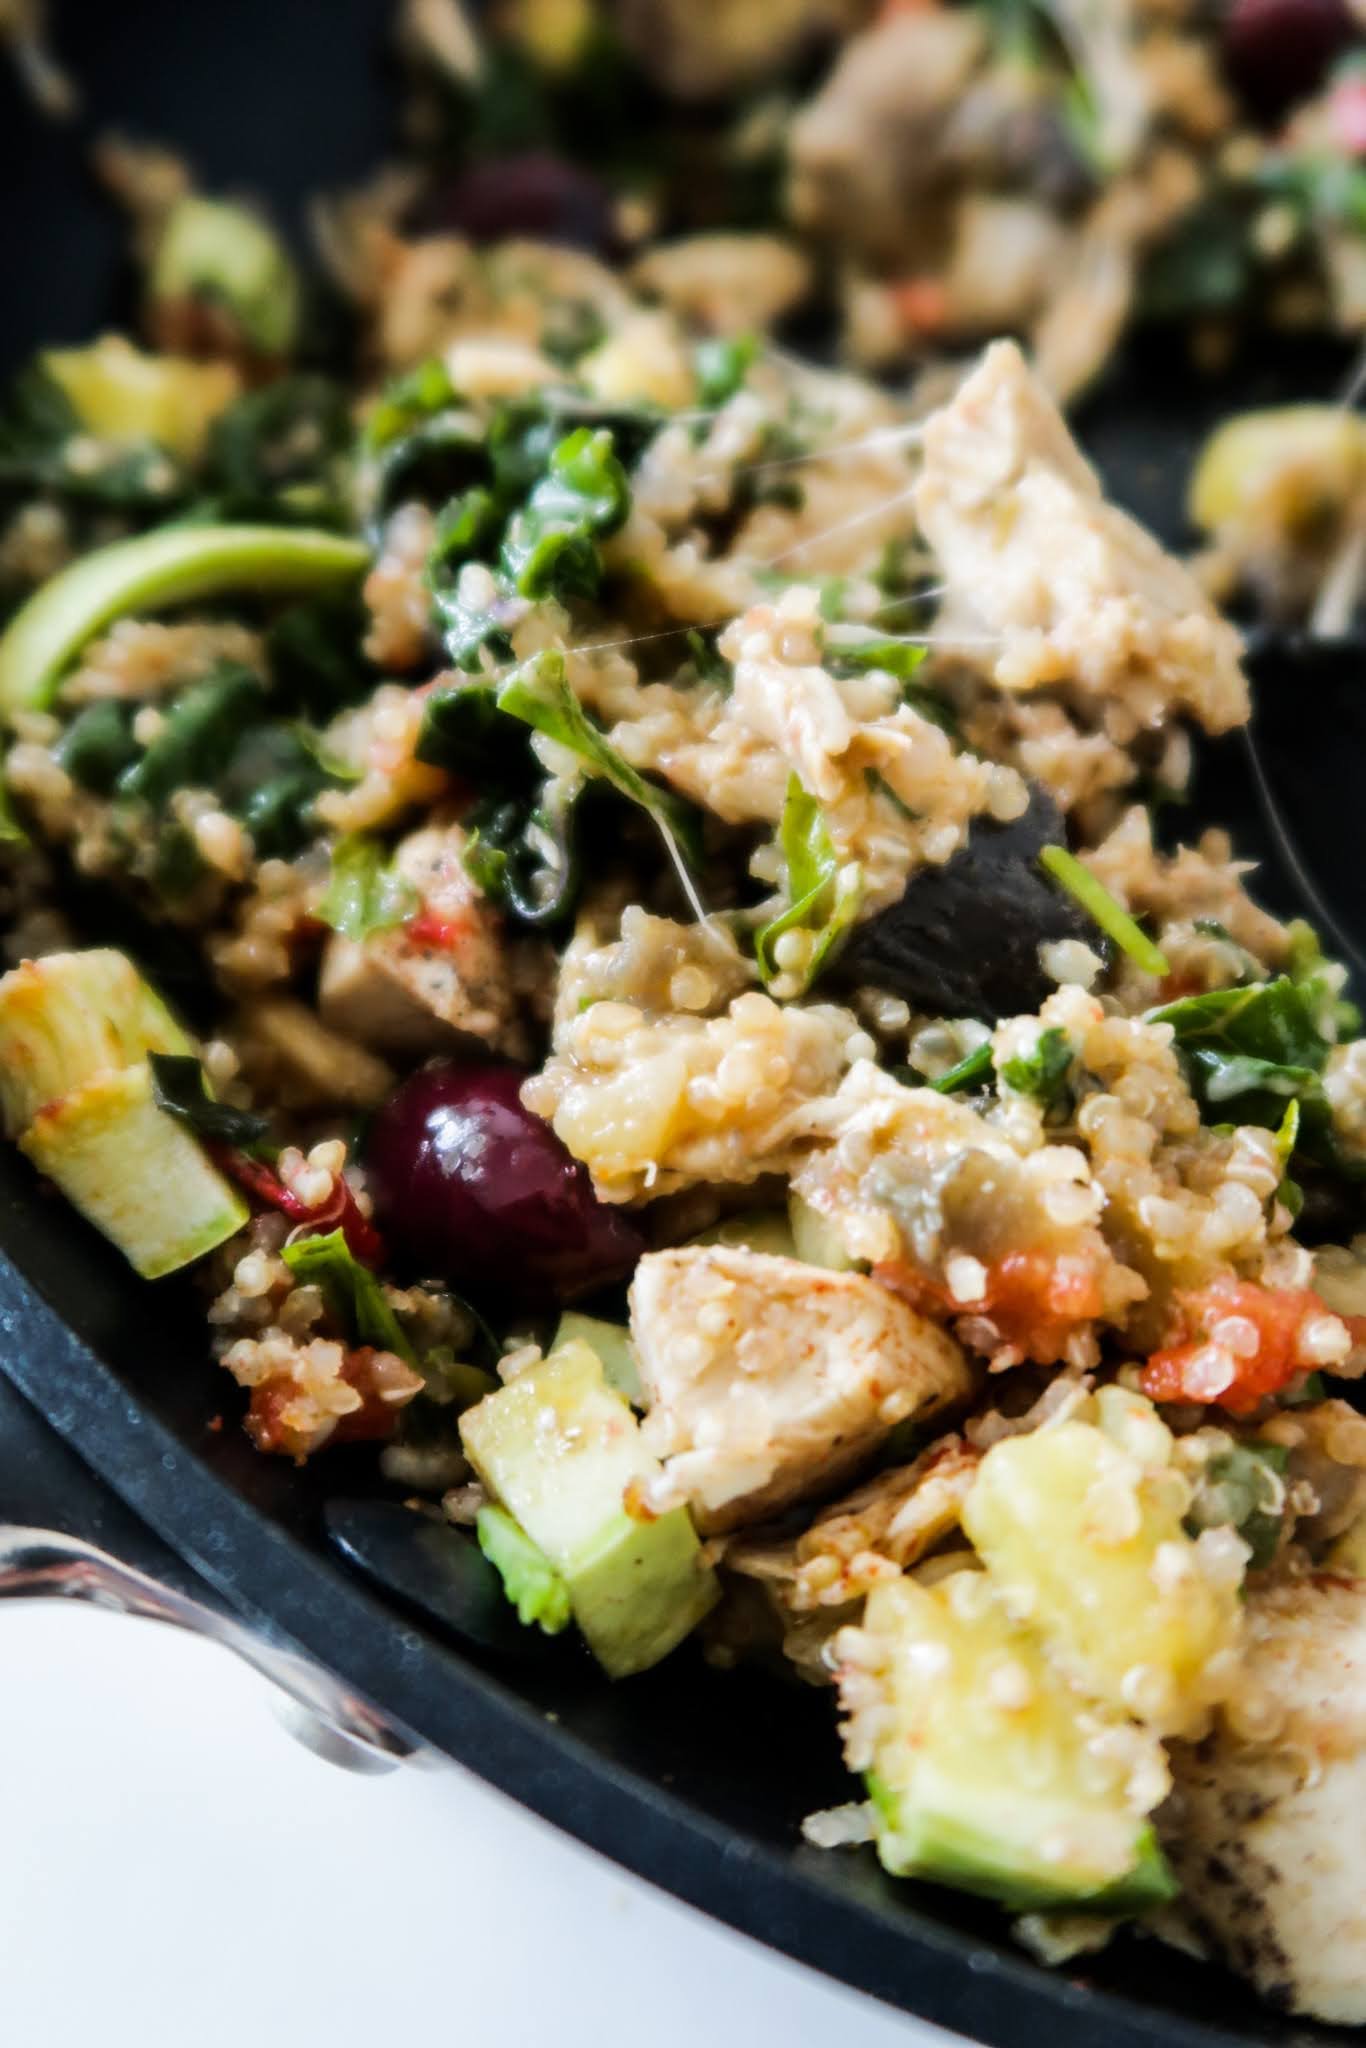 This is a 15-minute one pan quinoa with chicken and kale dinner recipe. It's an easy weeknight meal that is absolutely delicious, healthy and gluten free - super easy and healthy dinner idea! Bonus: this easy quinoa recipe will also help you clean out your fridge and use up the leftovers you don't know what to do with.